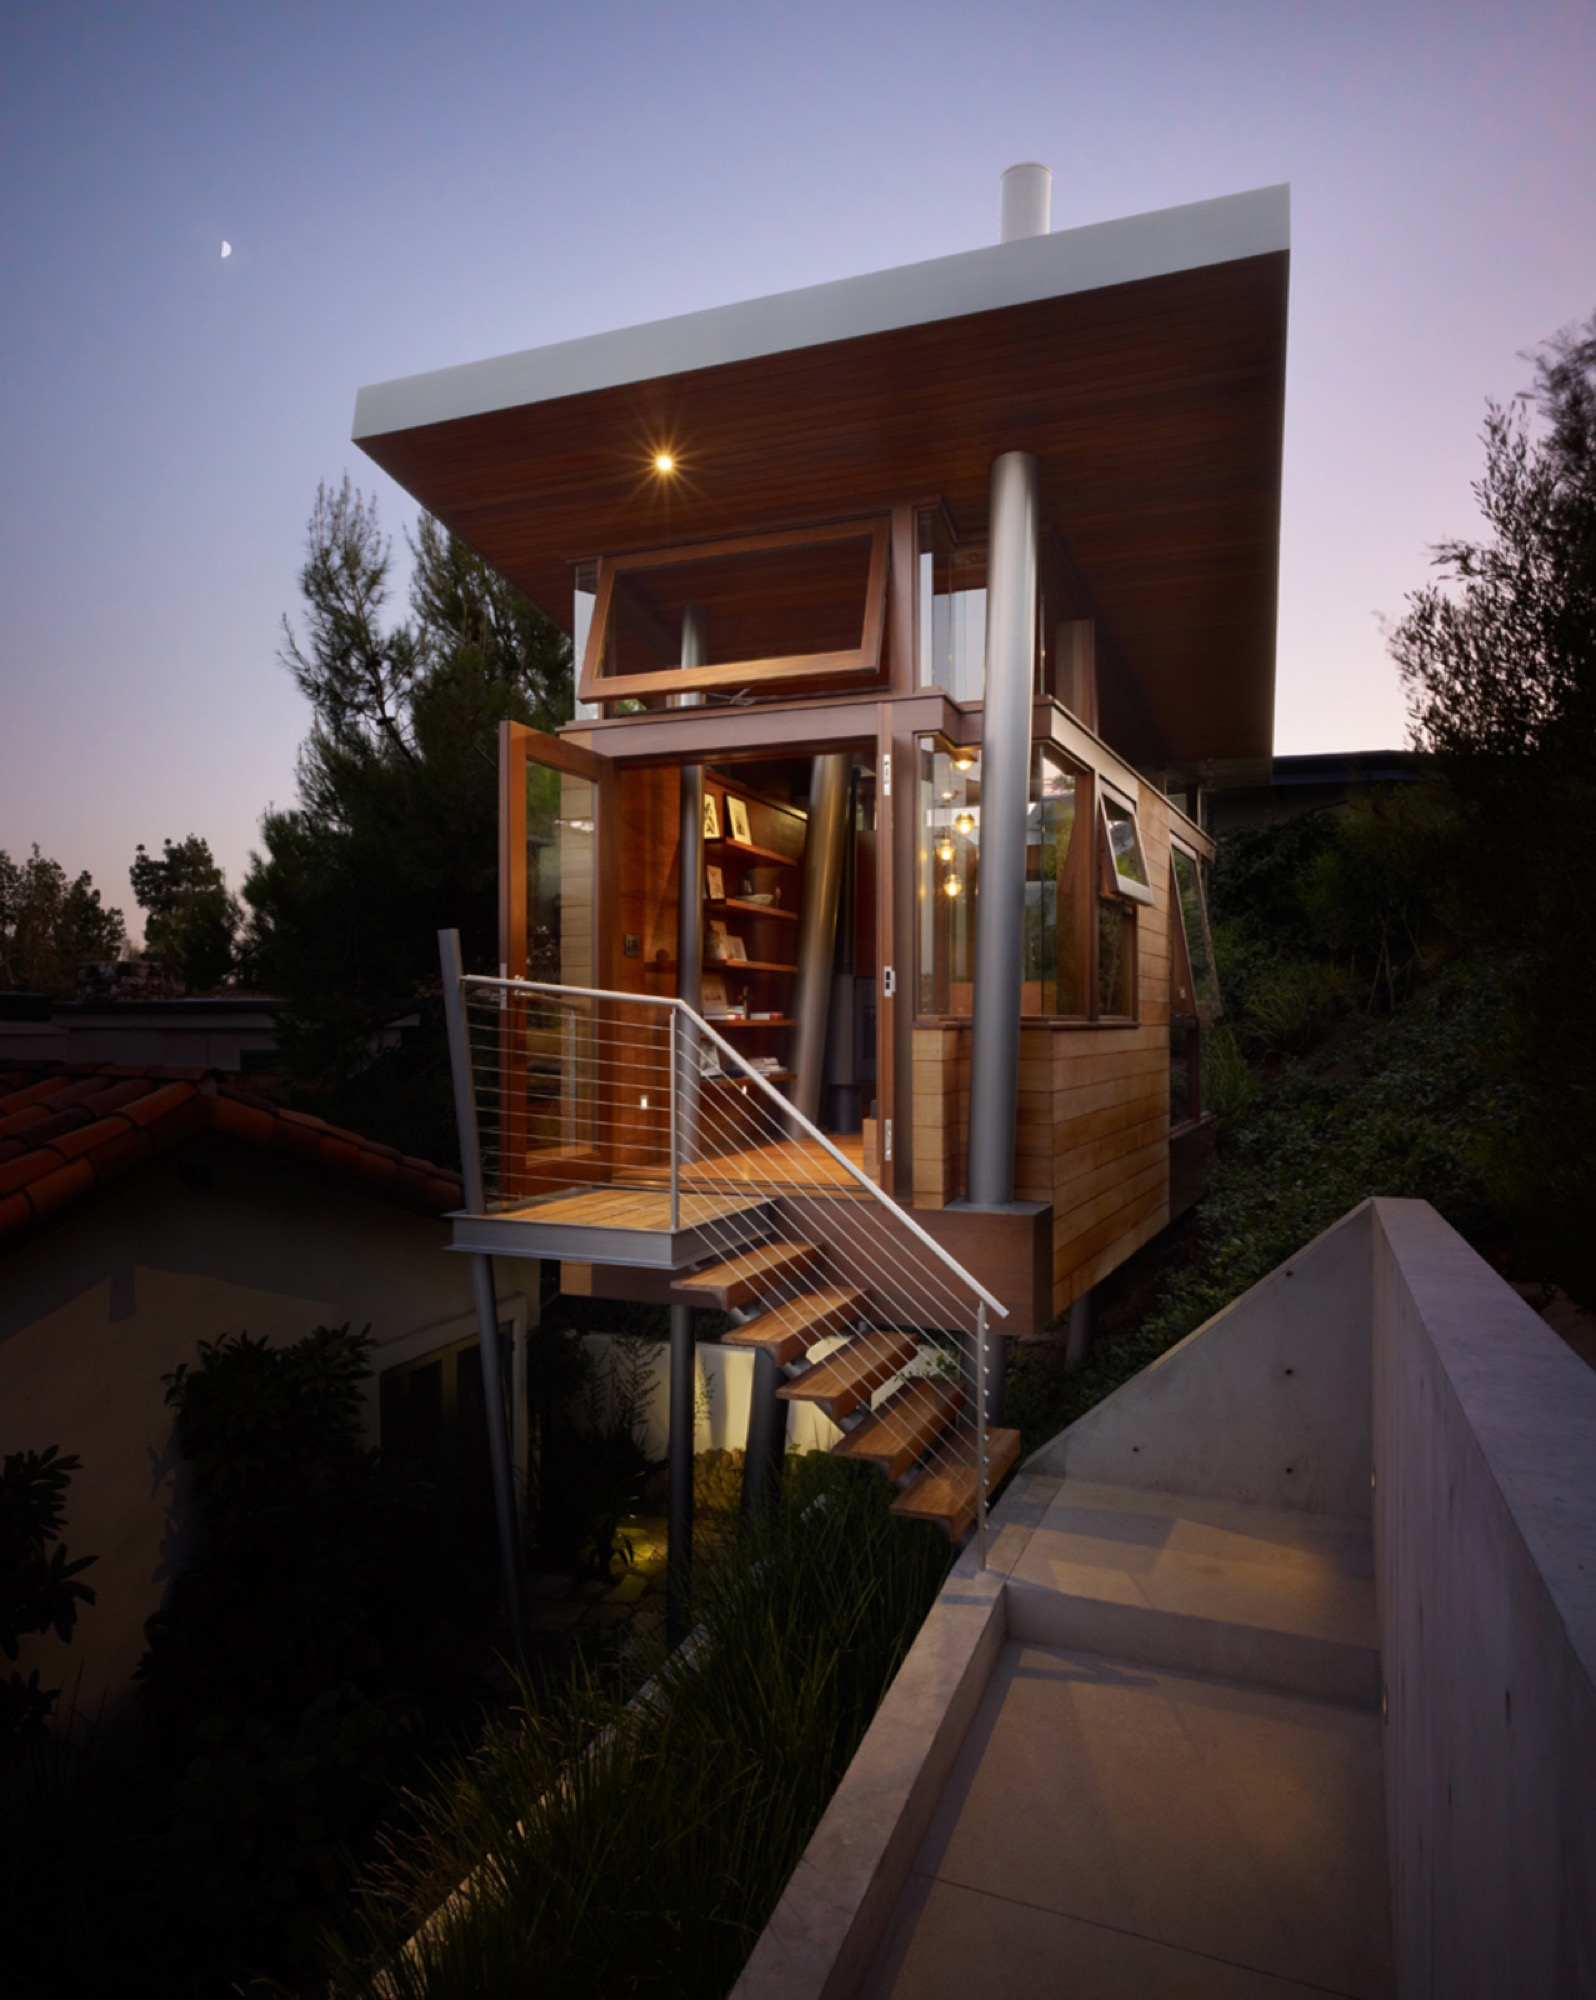 Tiny tree house designed by Rockefeller Partners Architects / Photo by Eric Staudenmaier